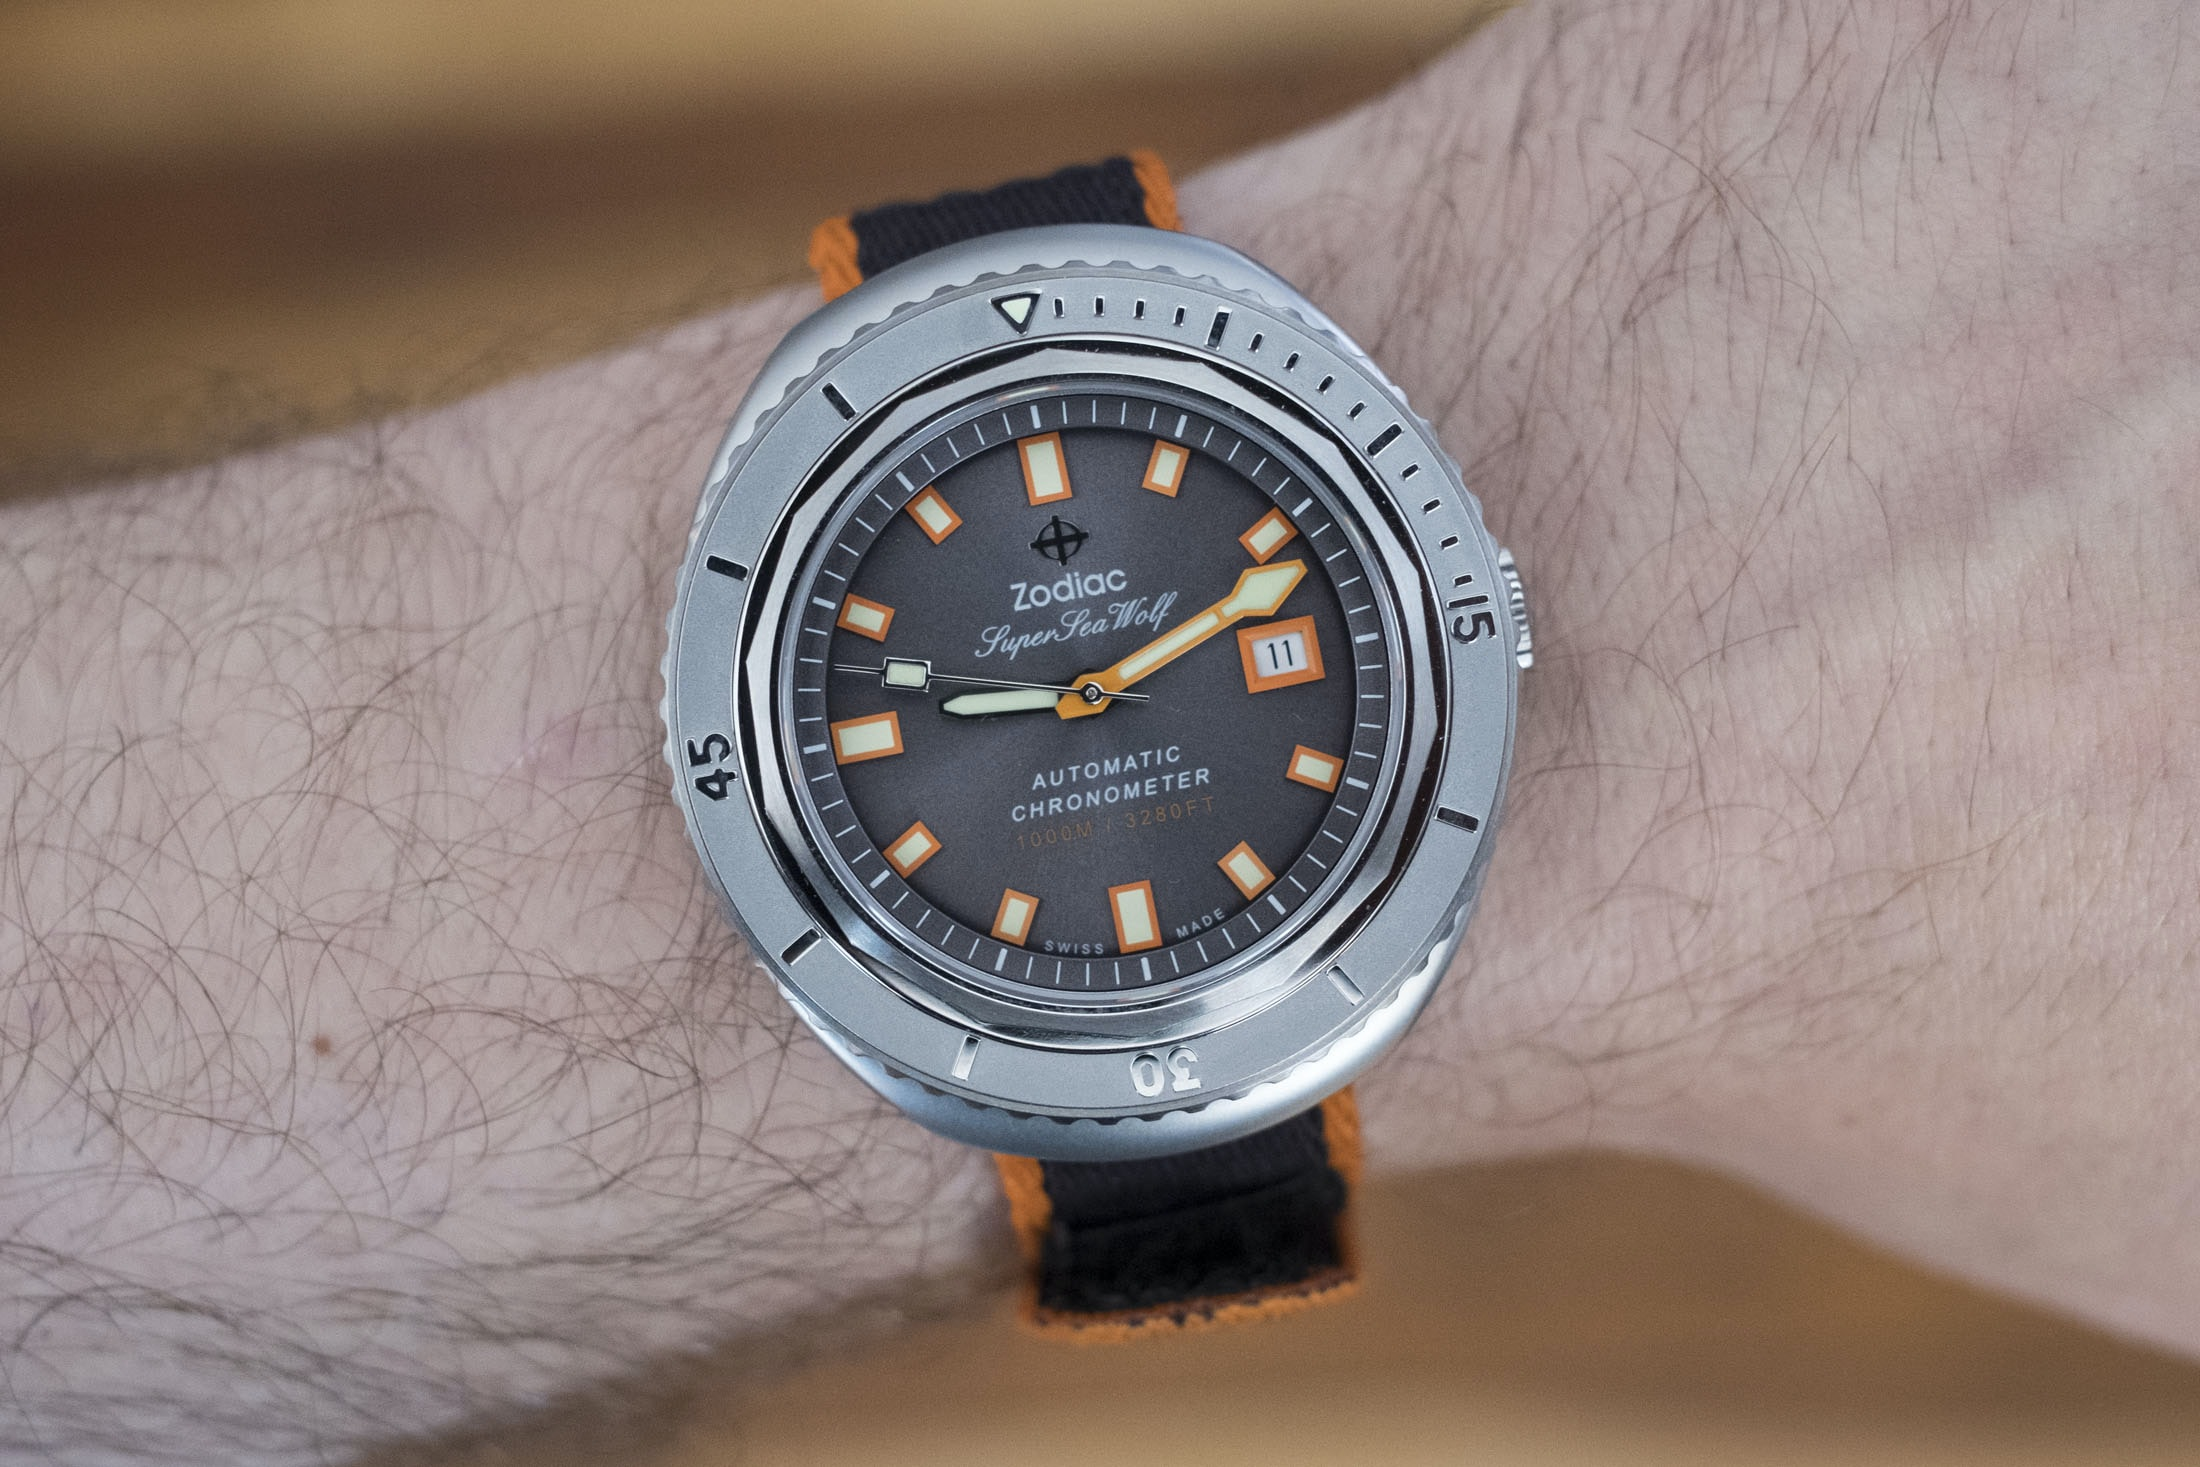 Introducing: The Zodiac Super Sea Wolf 68 Limited Edition (Live Pics & Pricing) DSCF8769